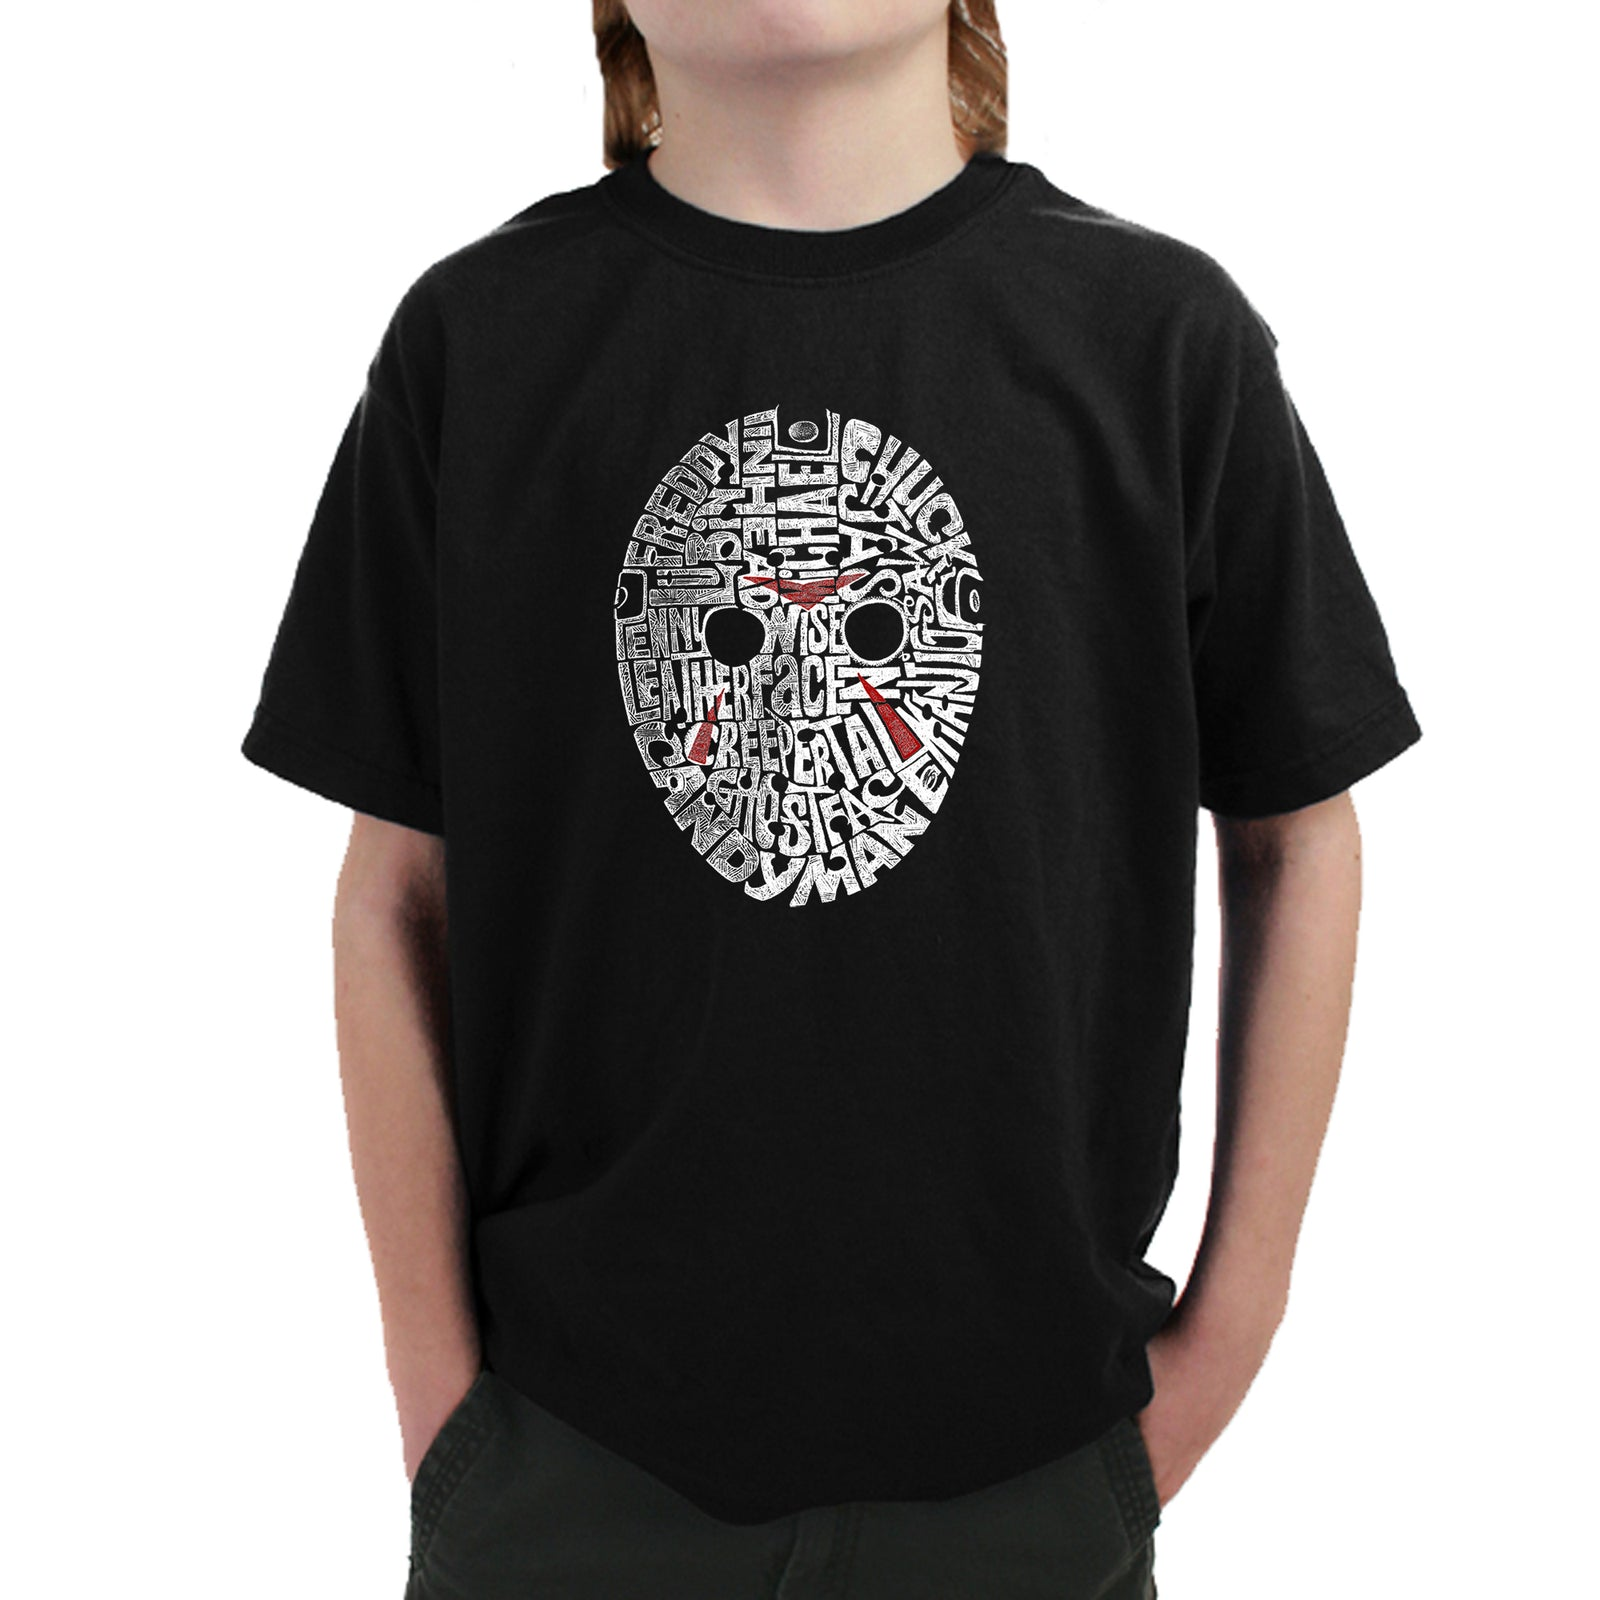 Boy's T-shirt - Slasher Movie Villians